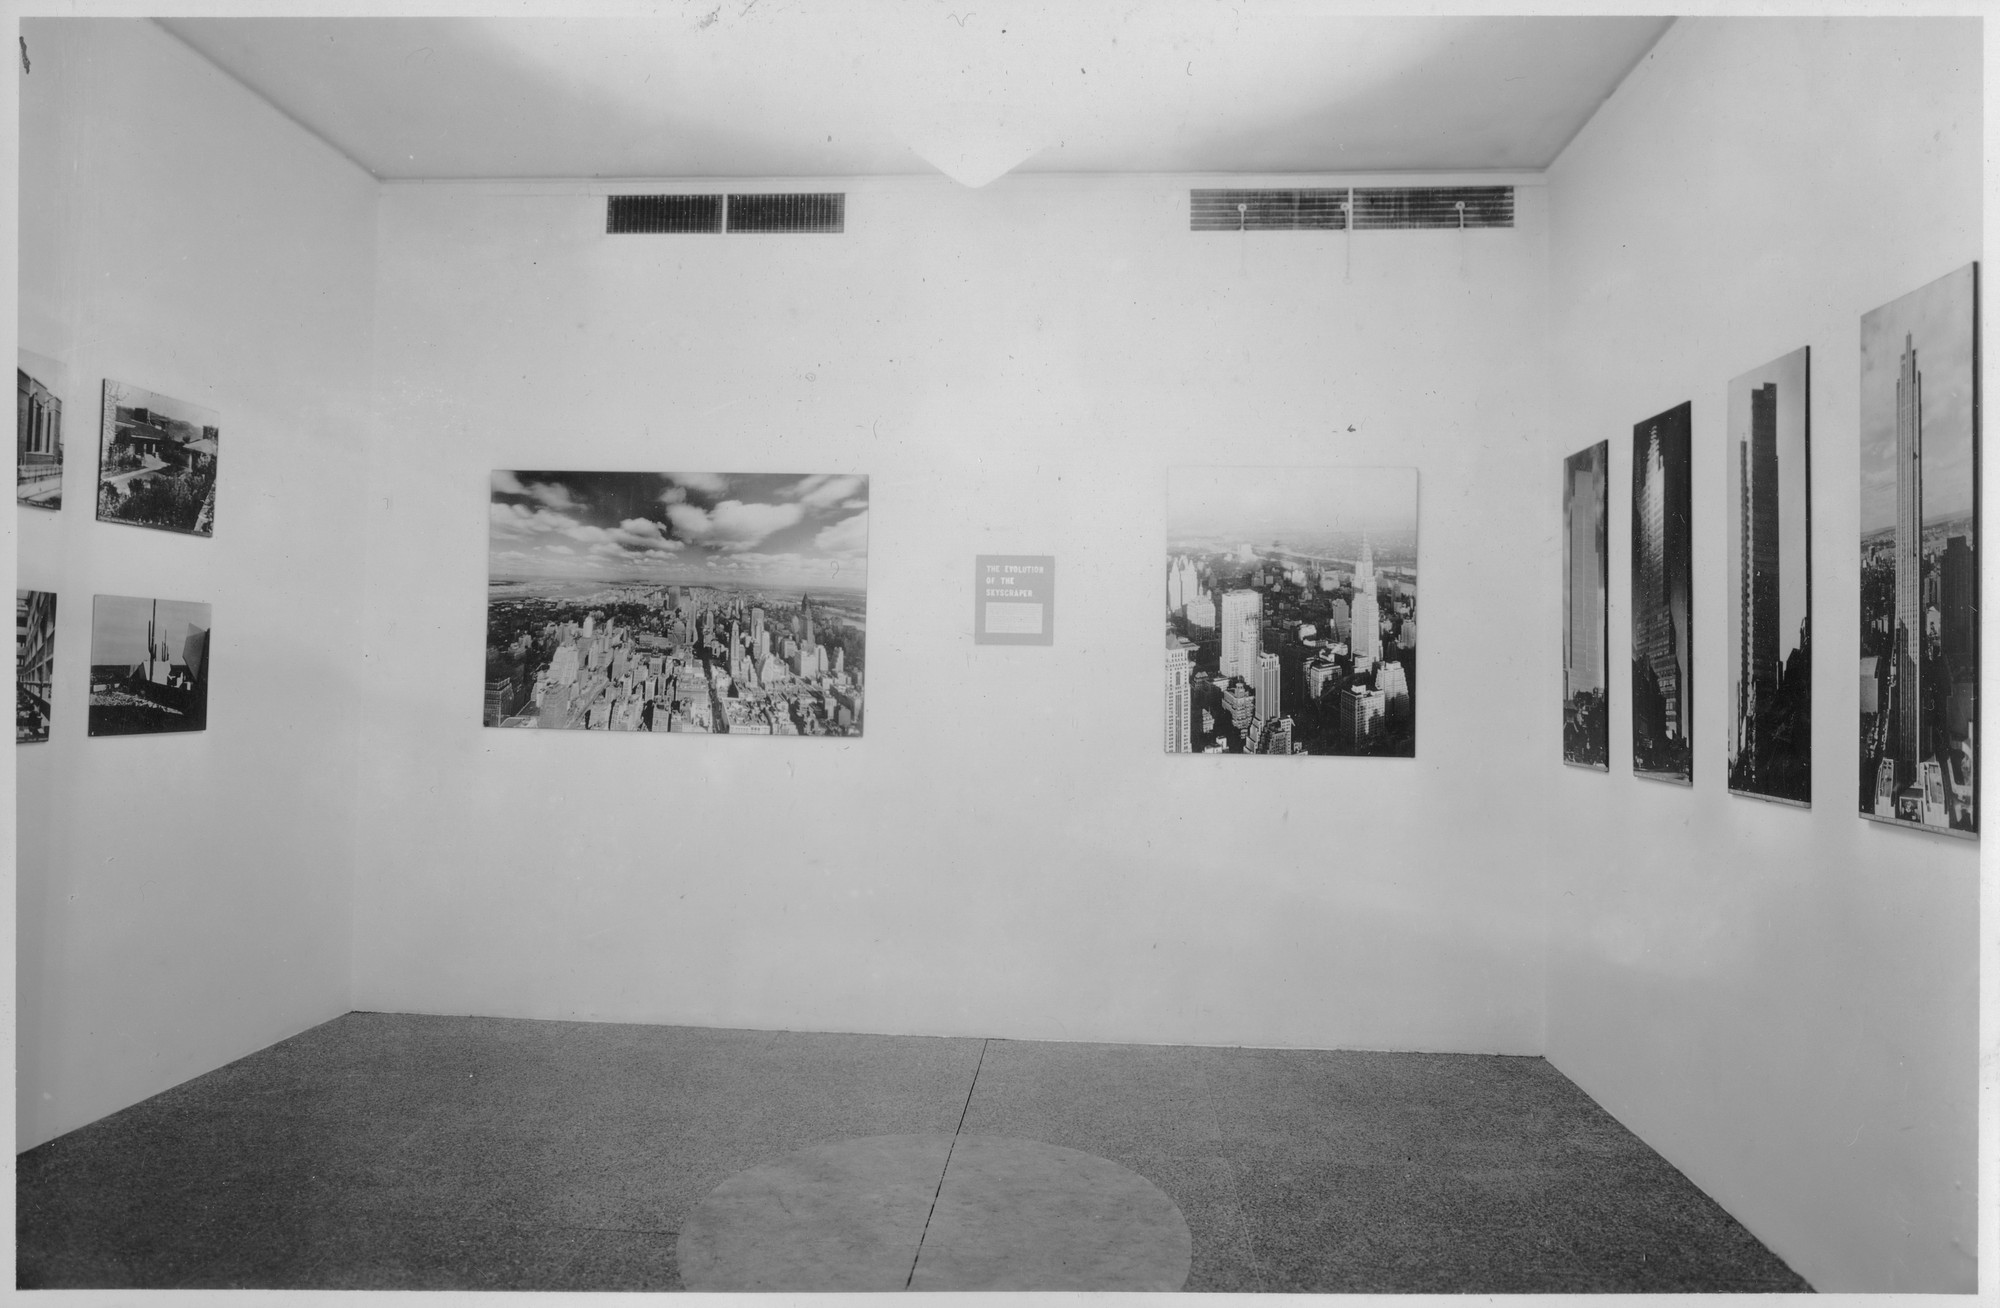 "Installation view of the exhibition, ""Three Centuries of American Architecture."" February 15, 1939–March 15, 1939. Photographic Archive. The Museum of Modern Art Archives, New York. IN83.1. Photograph by Soichi Sunami."